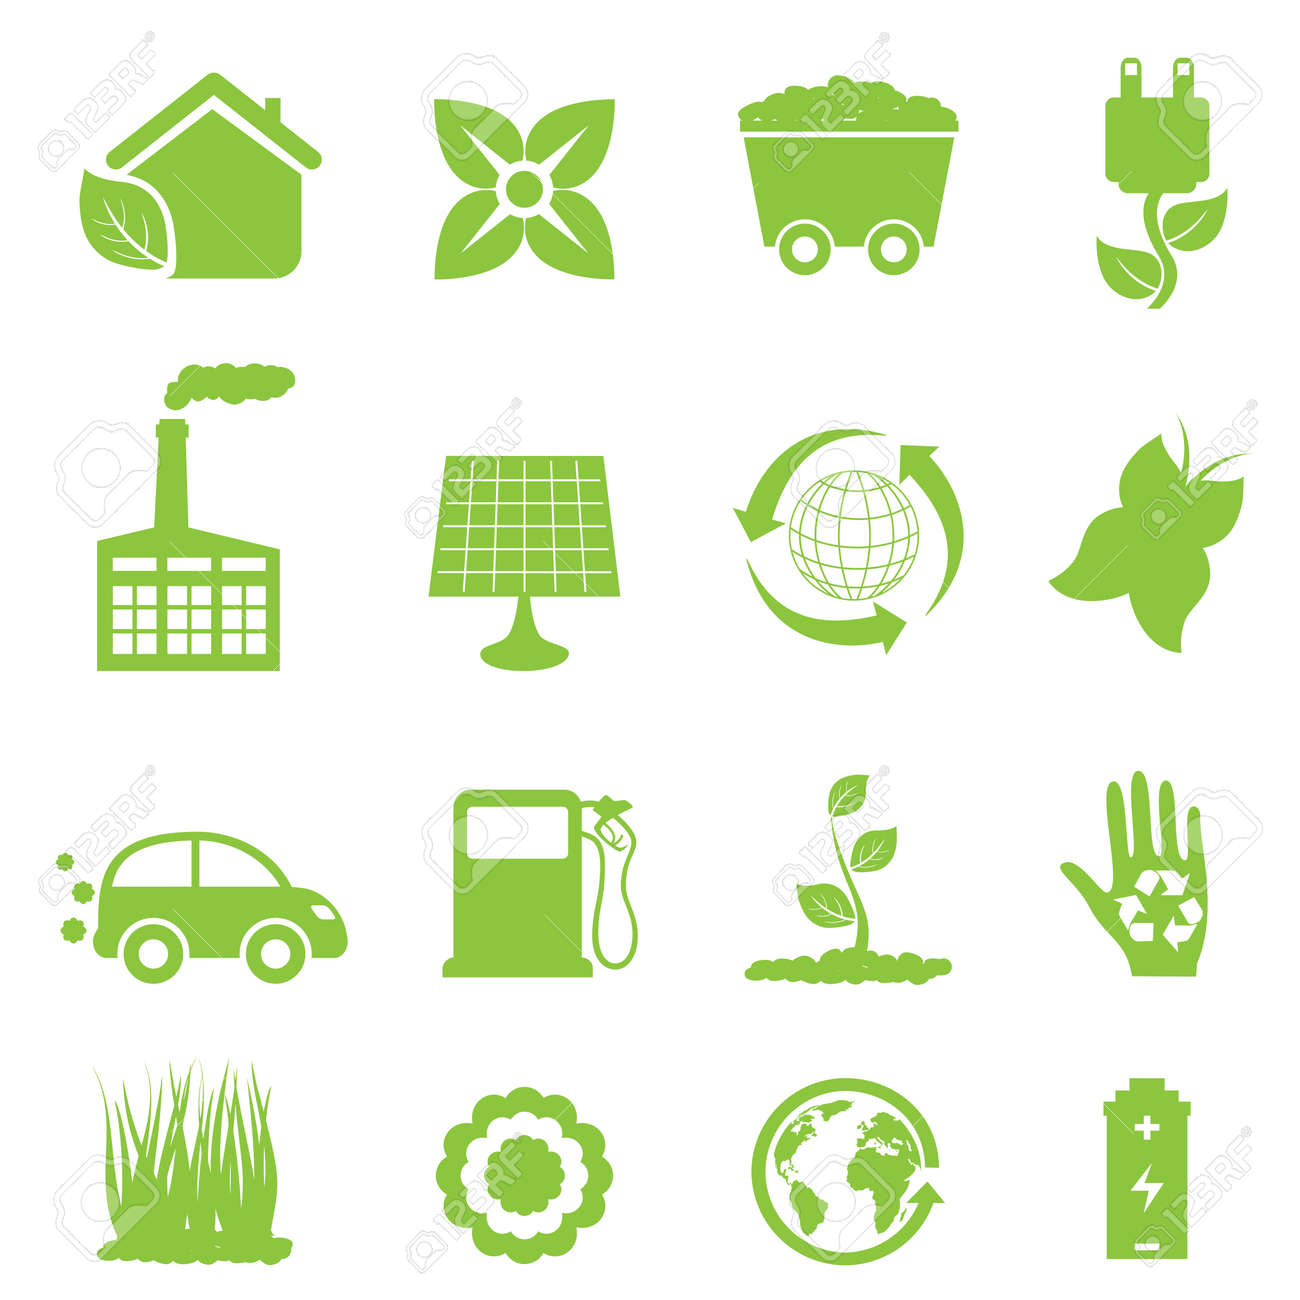 Recycling and clean energy icon set - 11381941